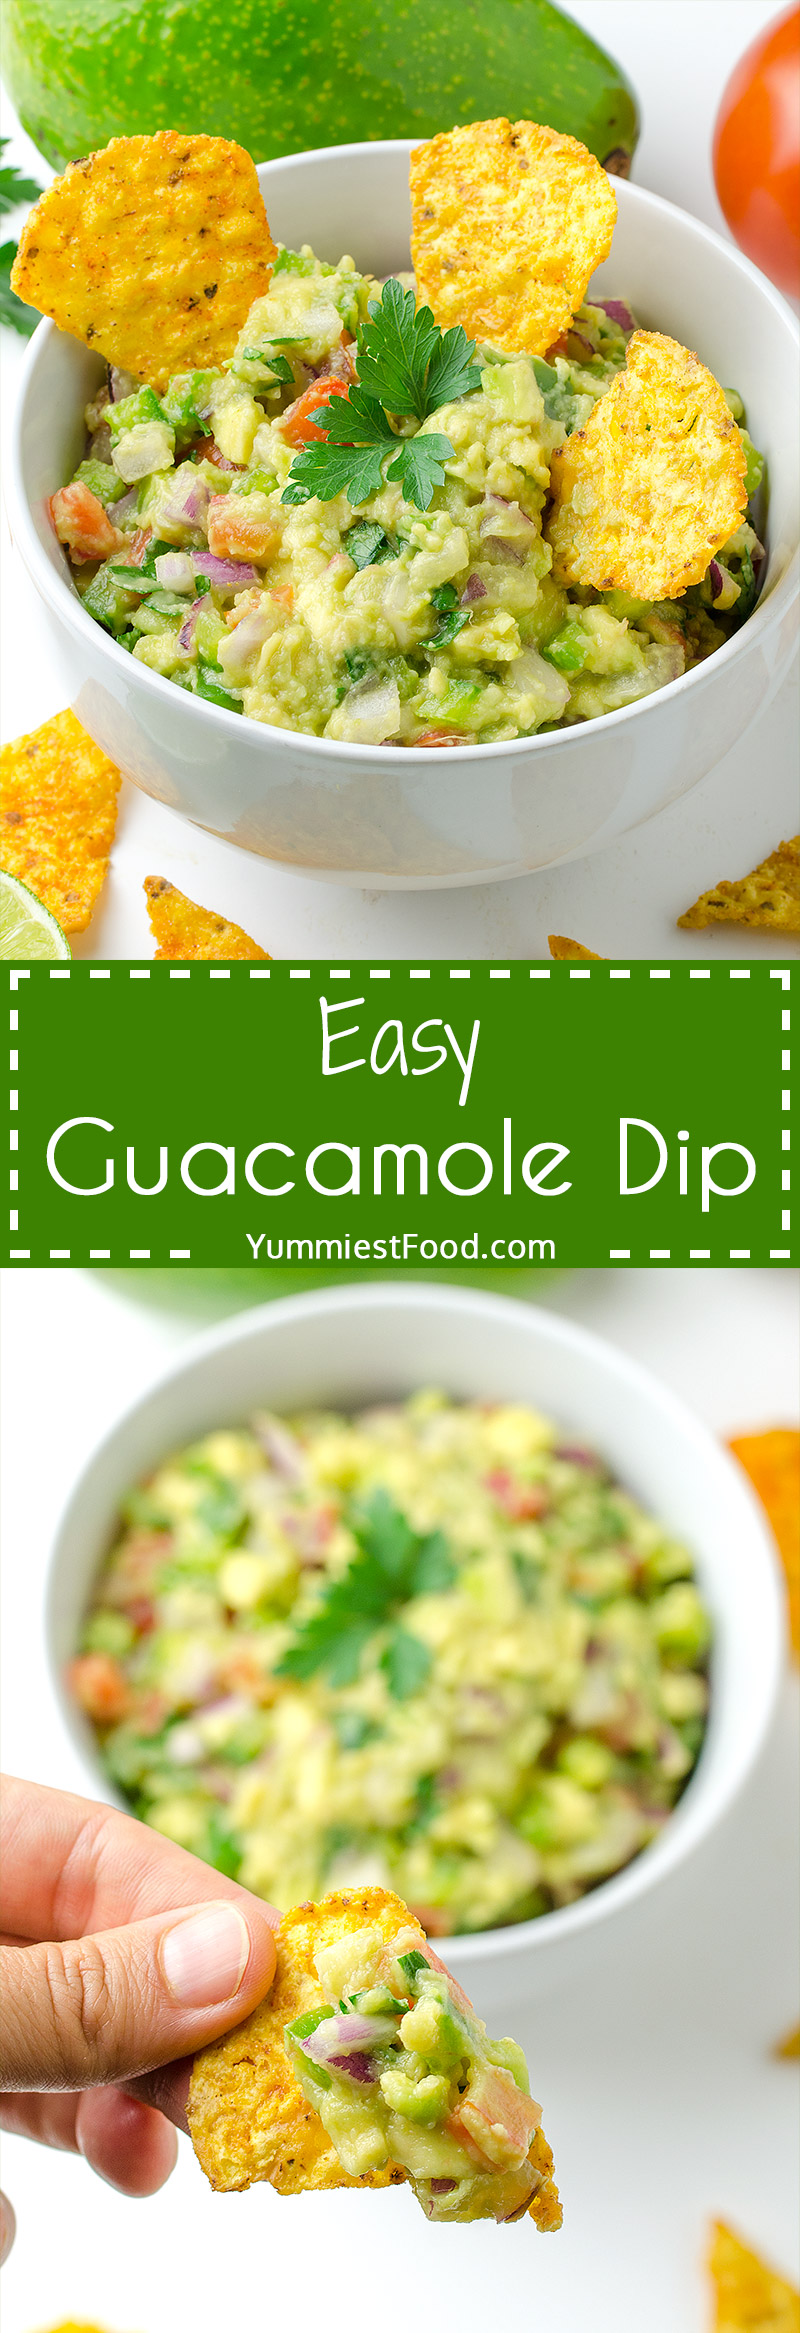 Easy Guacamole Dip - perfect choice for light dinner